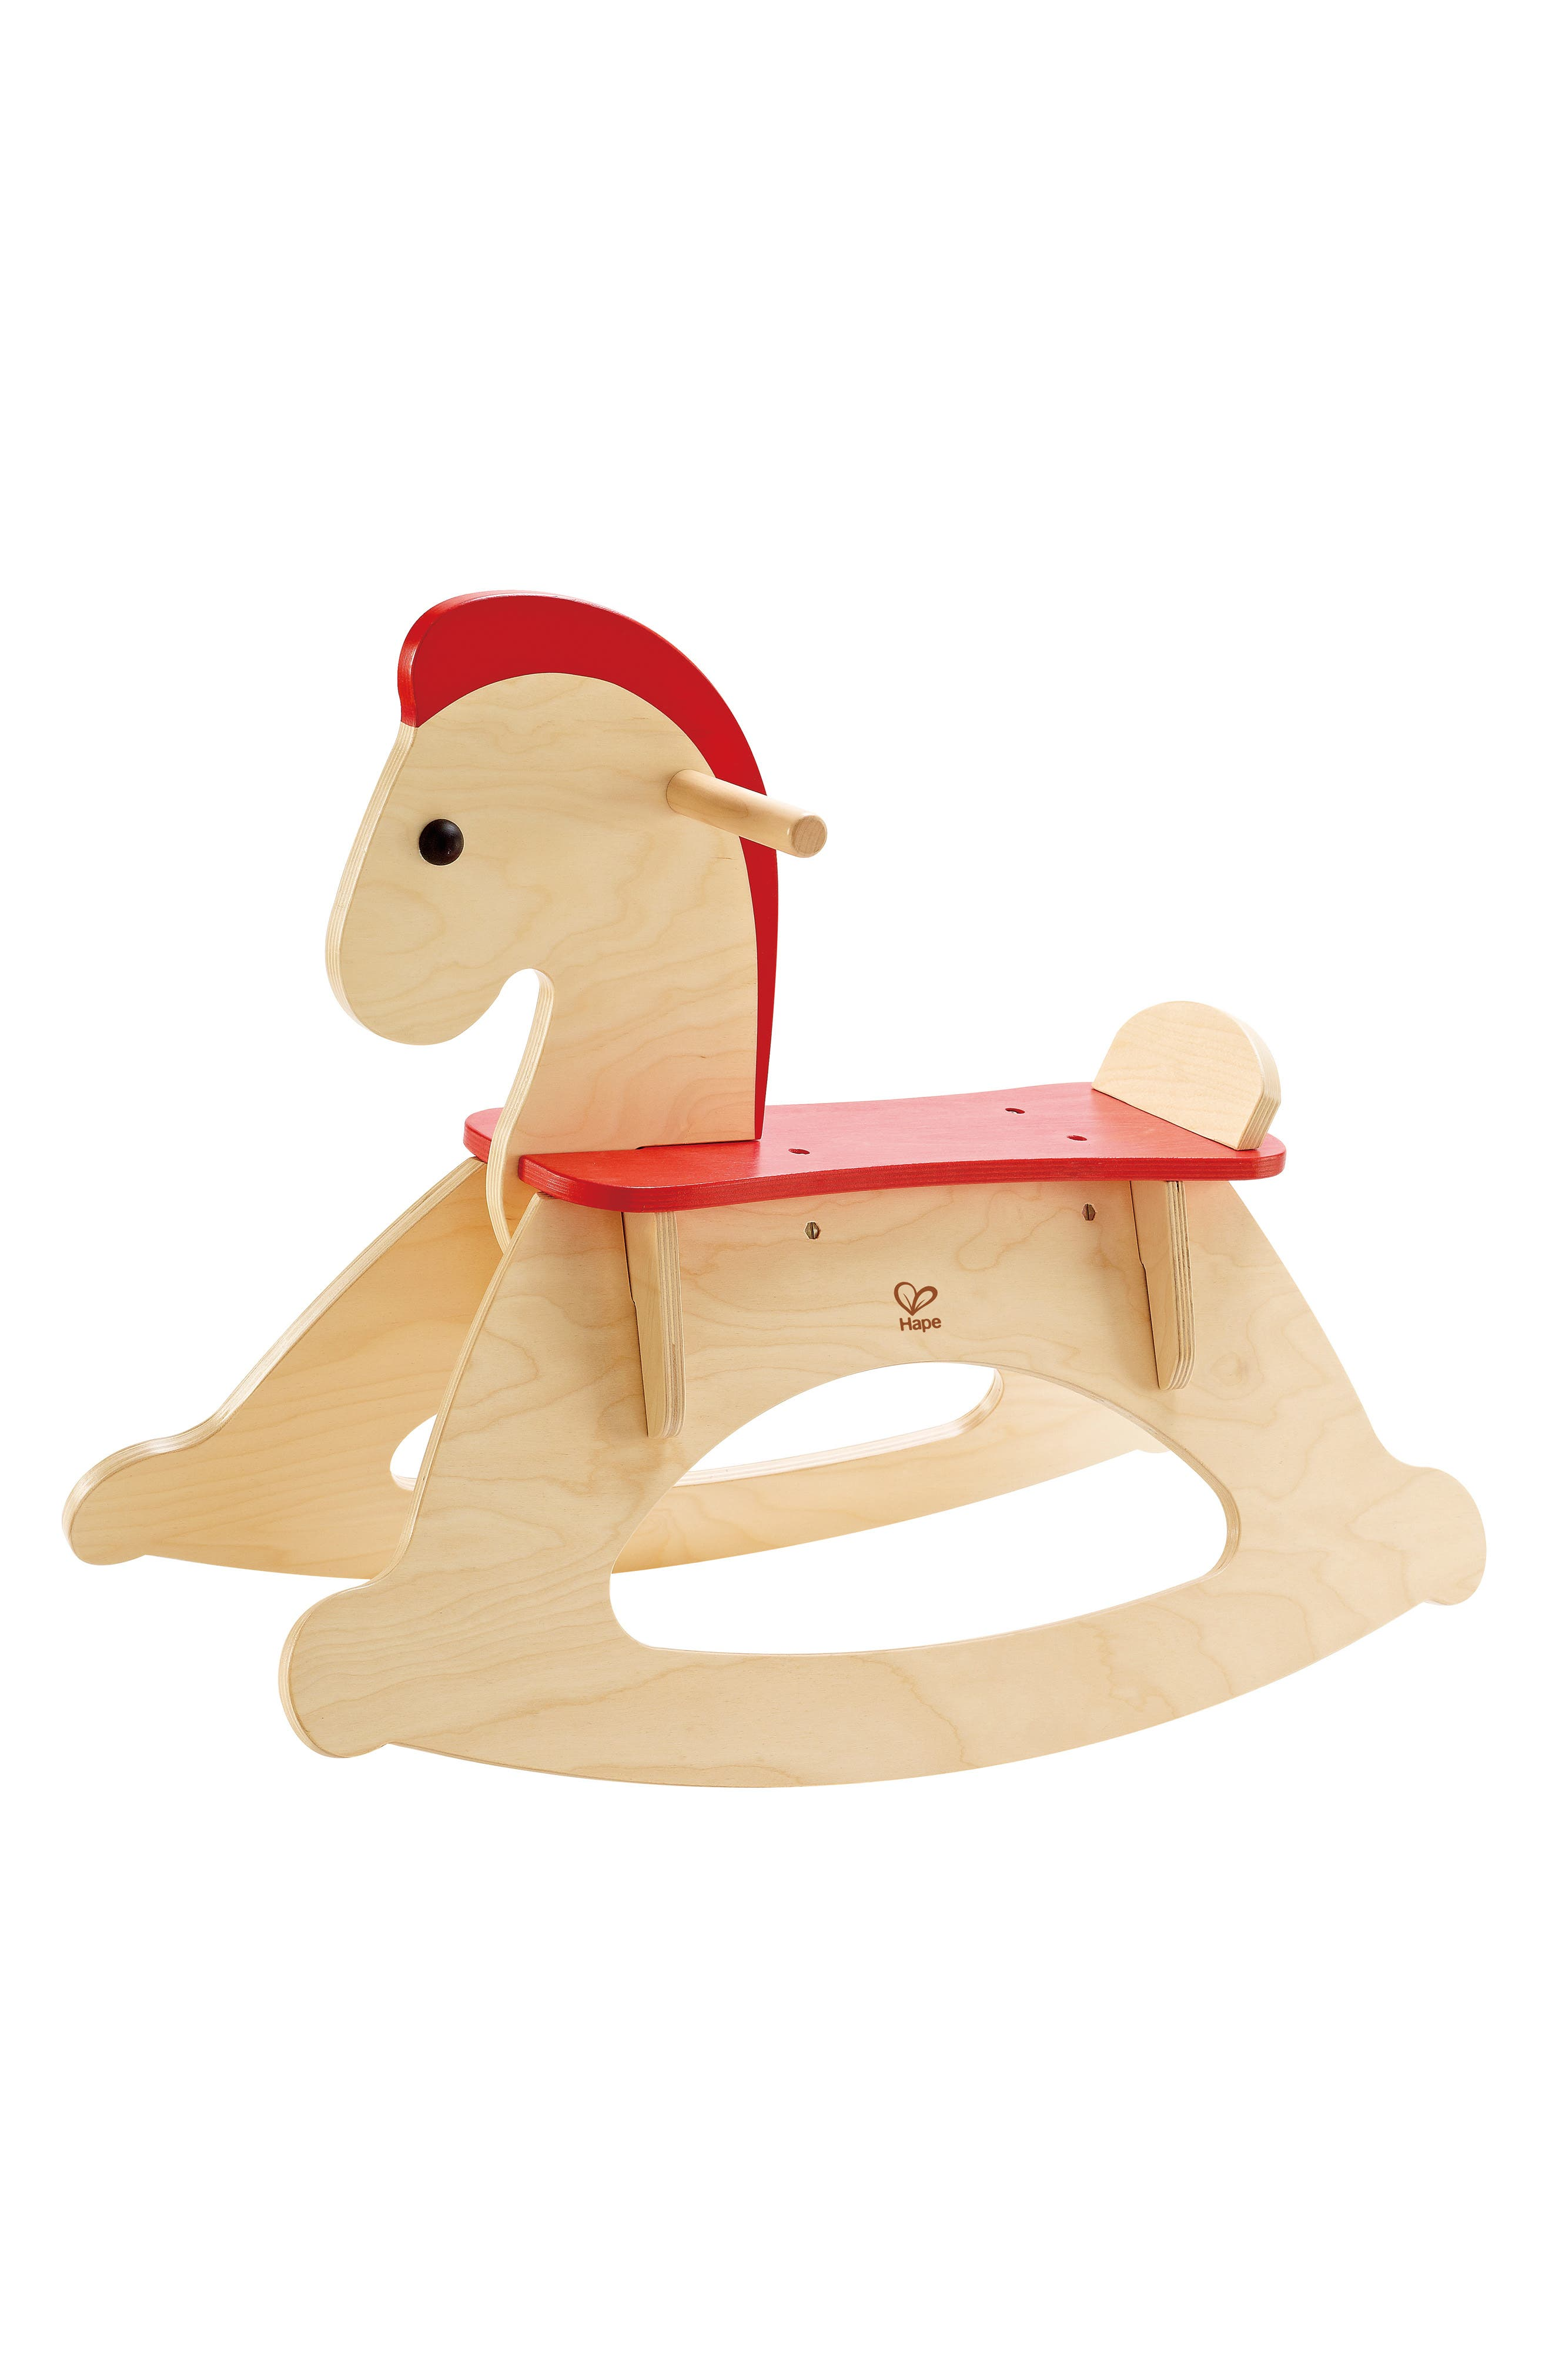 'Rock and Ride' Rocking Horse,                             Alternate thumbnail 3, color,                             600